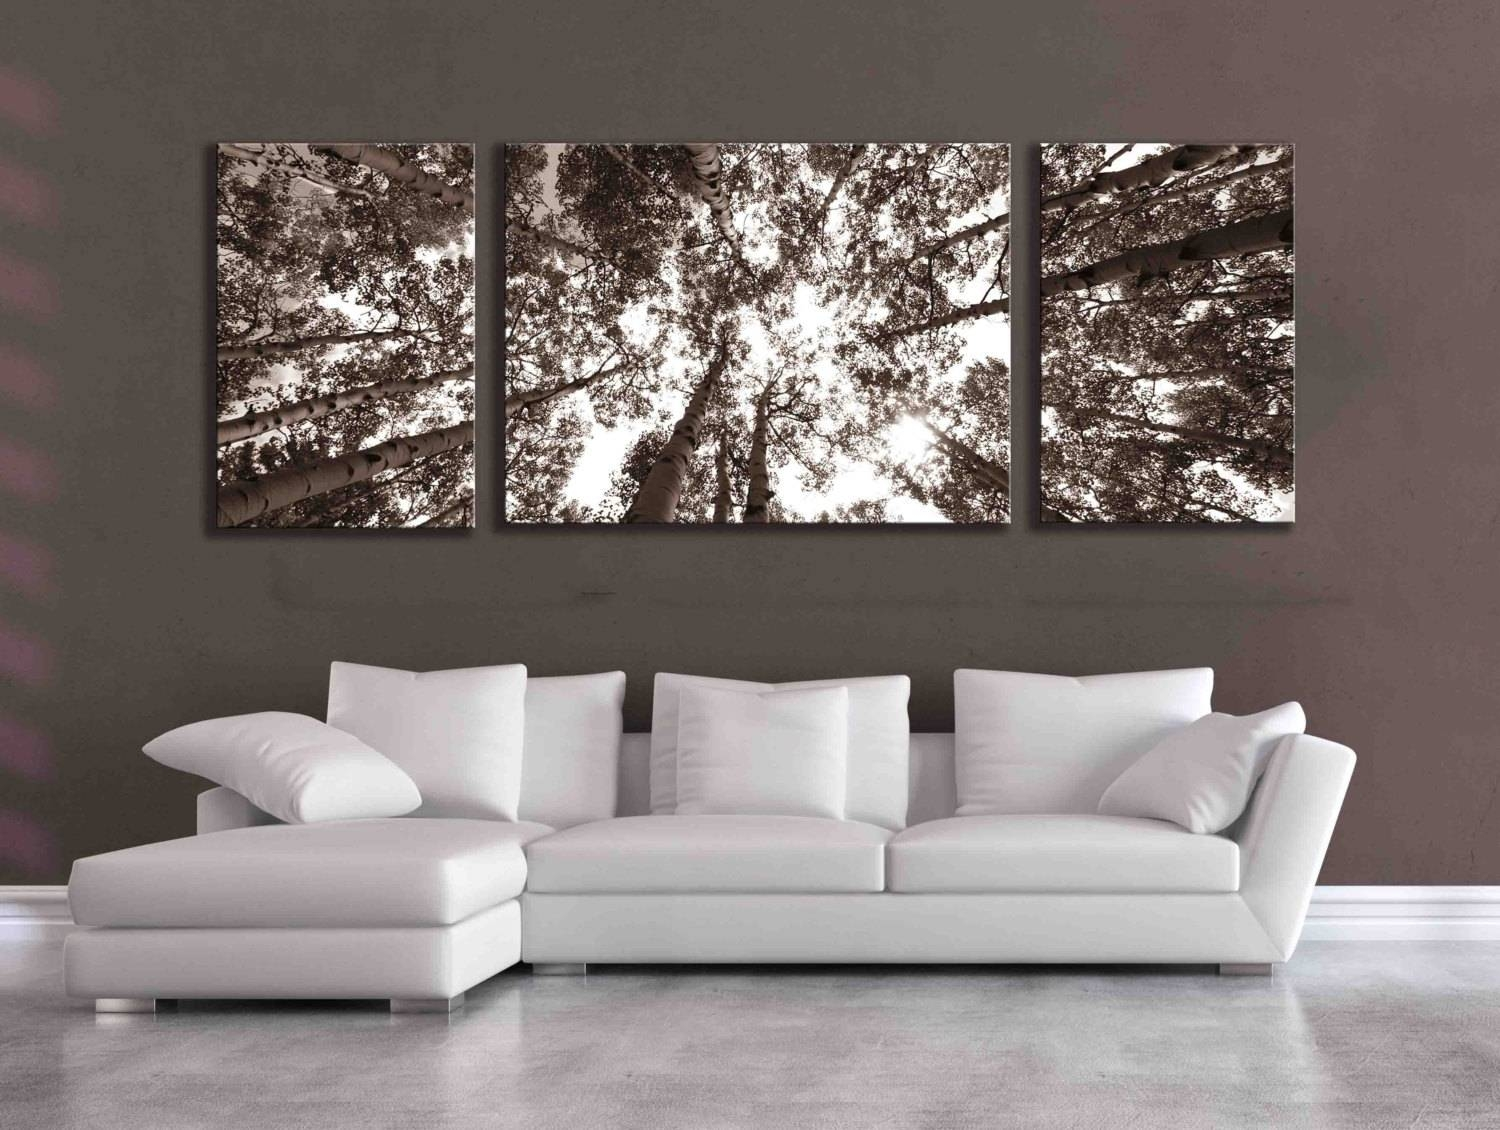 Large Sepia Three Panel Multi Piece Aspen Birch Tree Nature Regarding Most Recently Released Aspen Tree Wall Art (View 12 of 20)